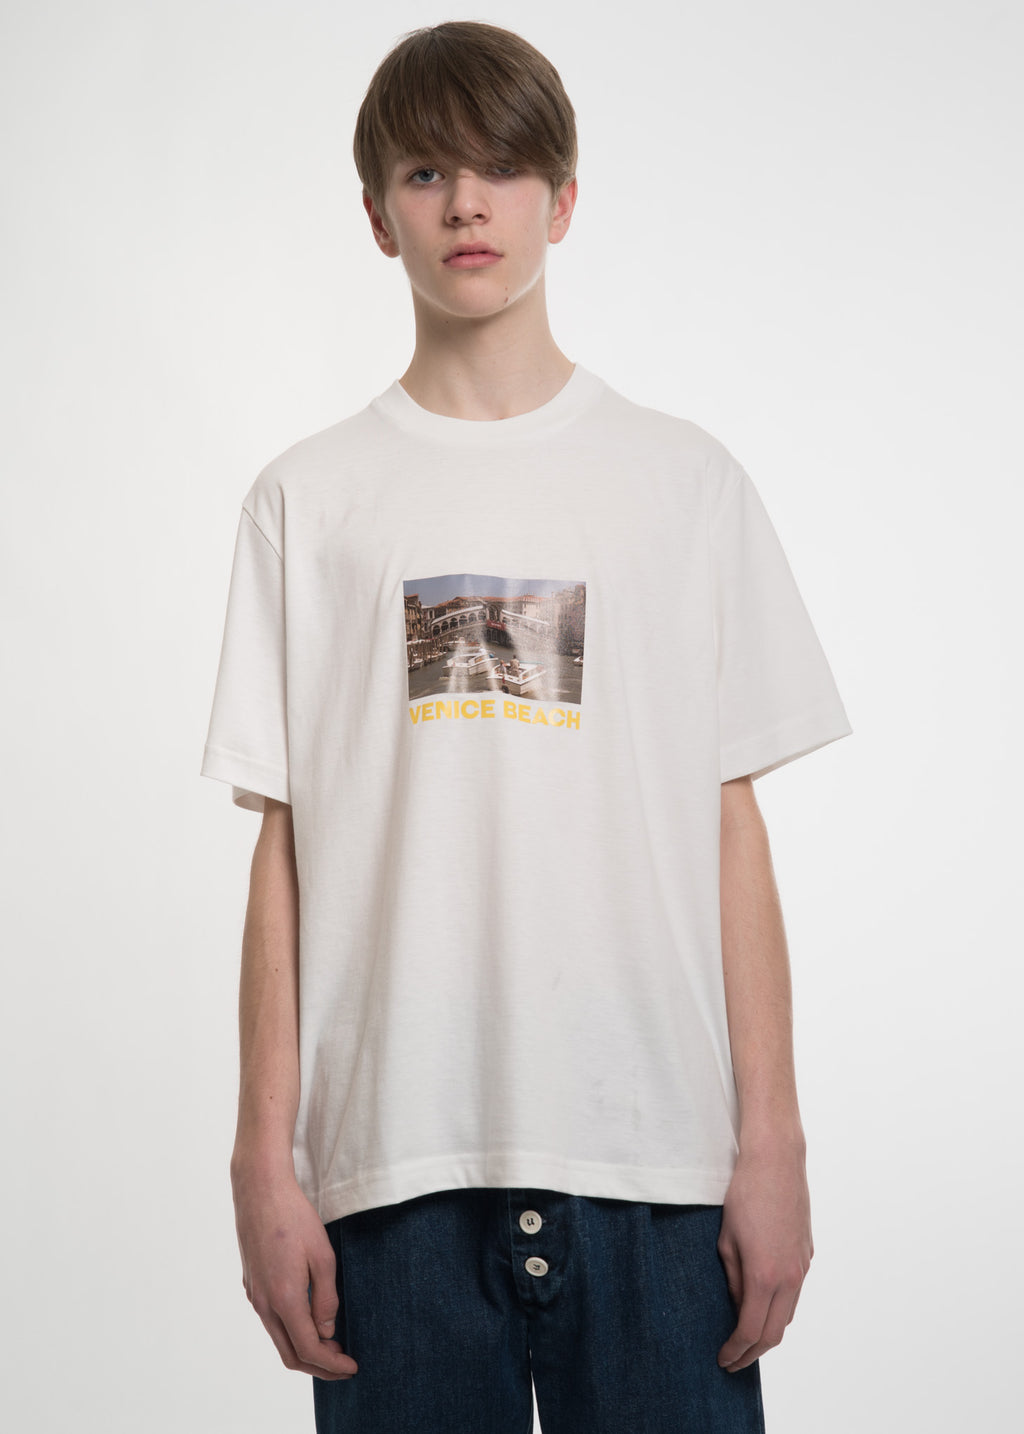 White Venice Beach T-Shirt